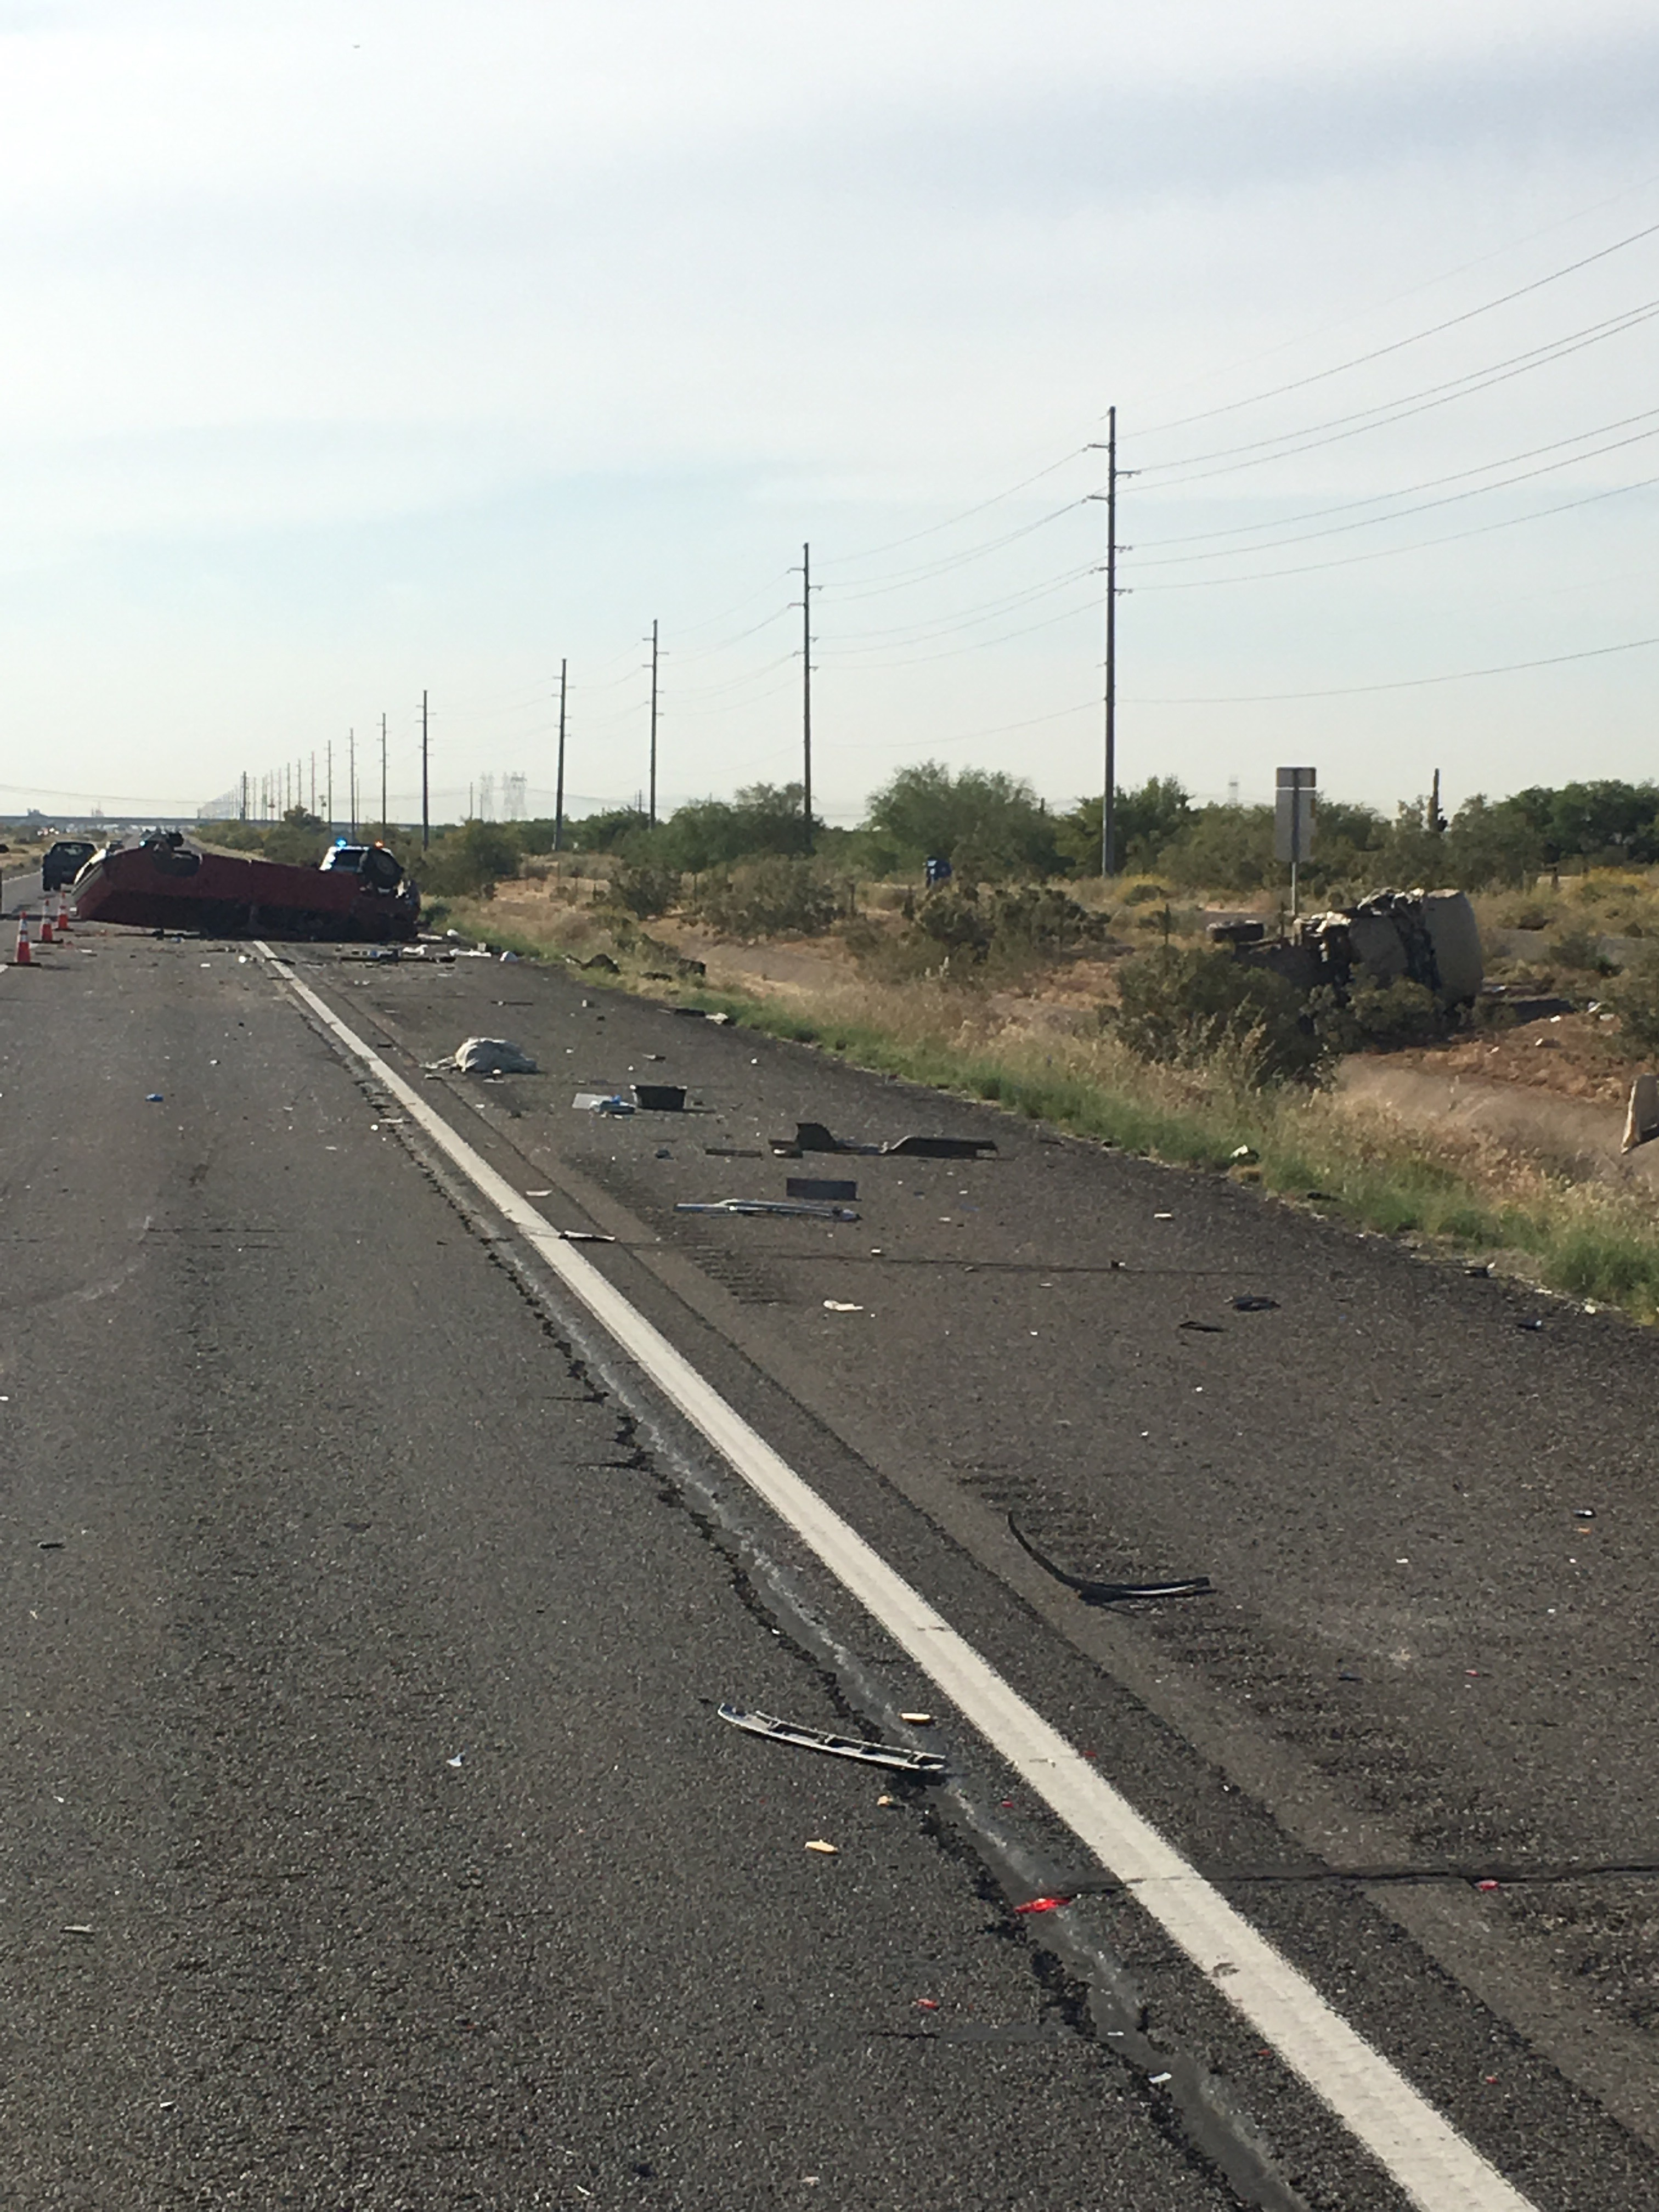 Distracted Driving Related Crash 5